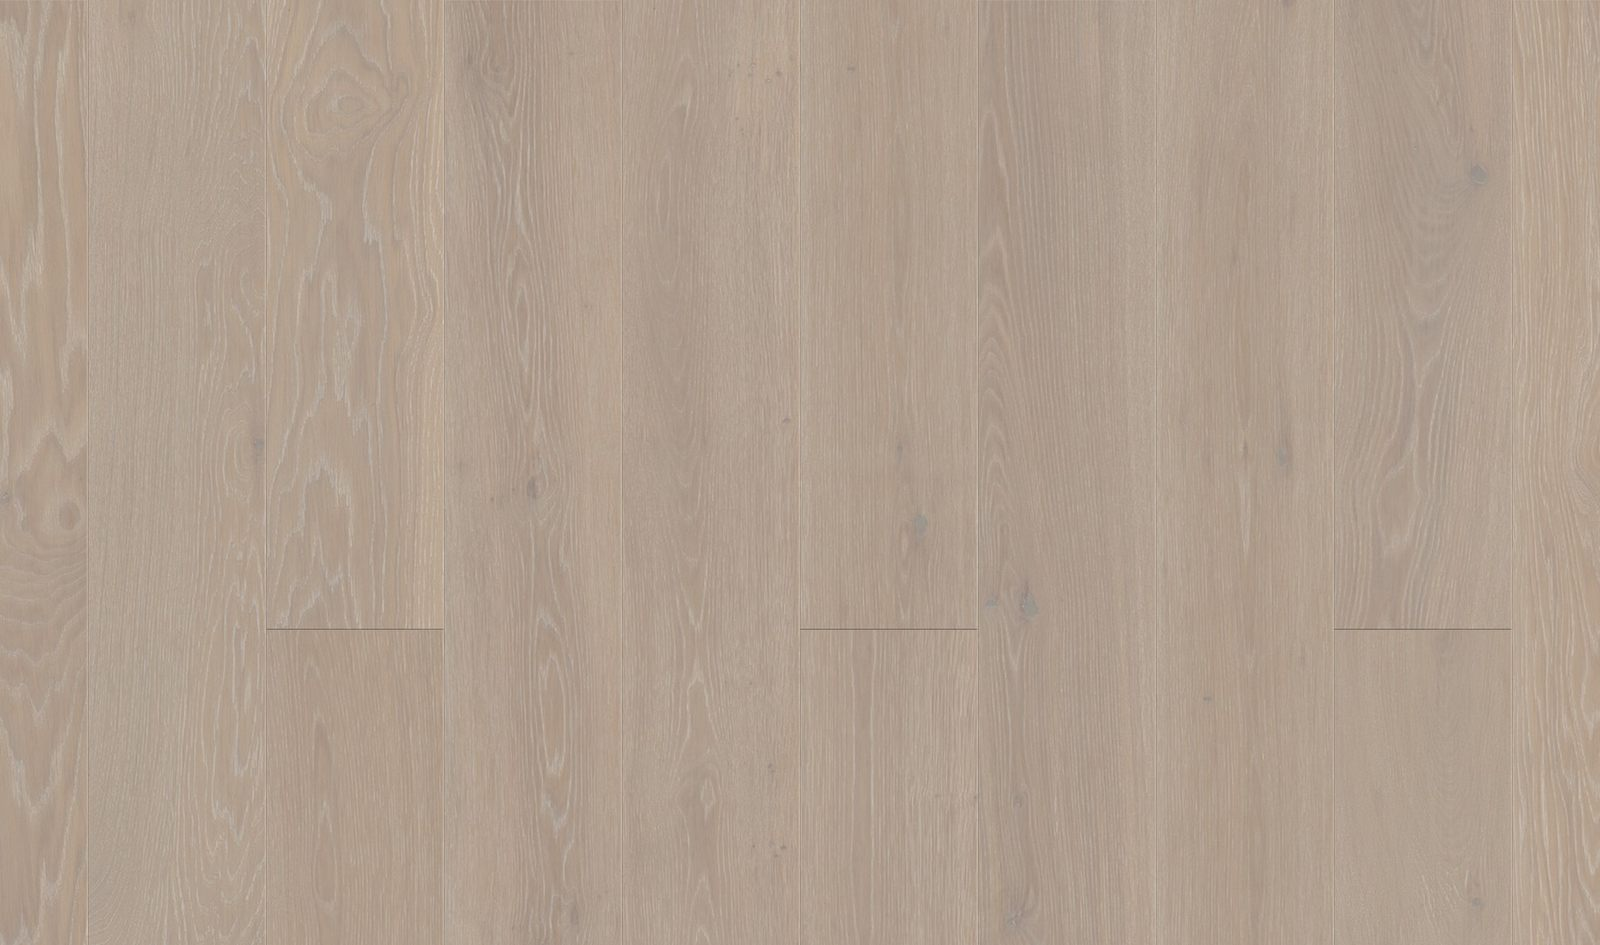 Boen hardwood flooring oak grey harmony for Parquet armony floor